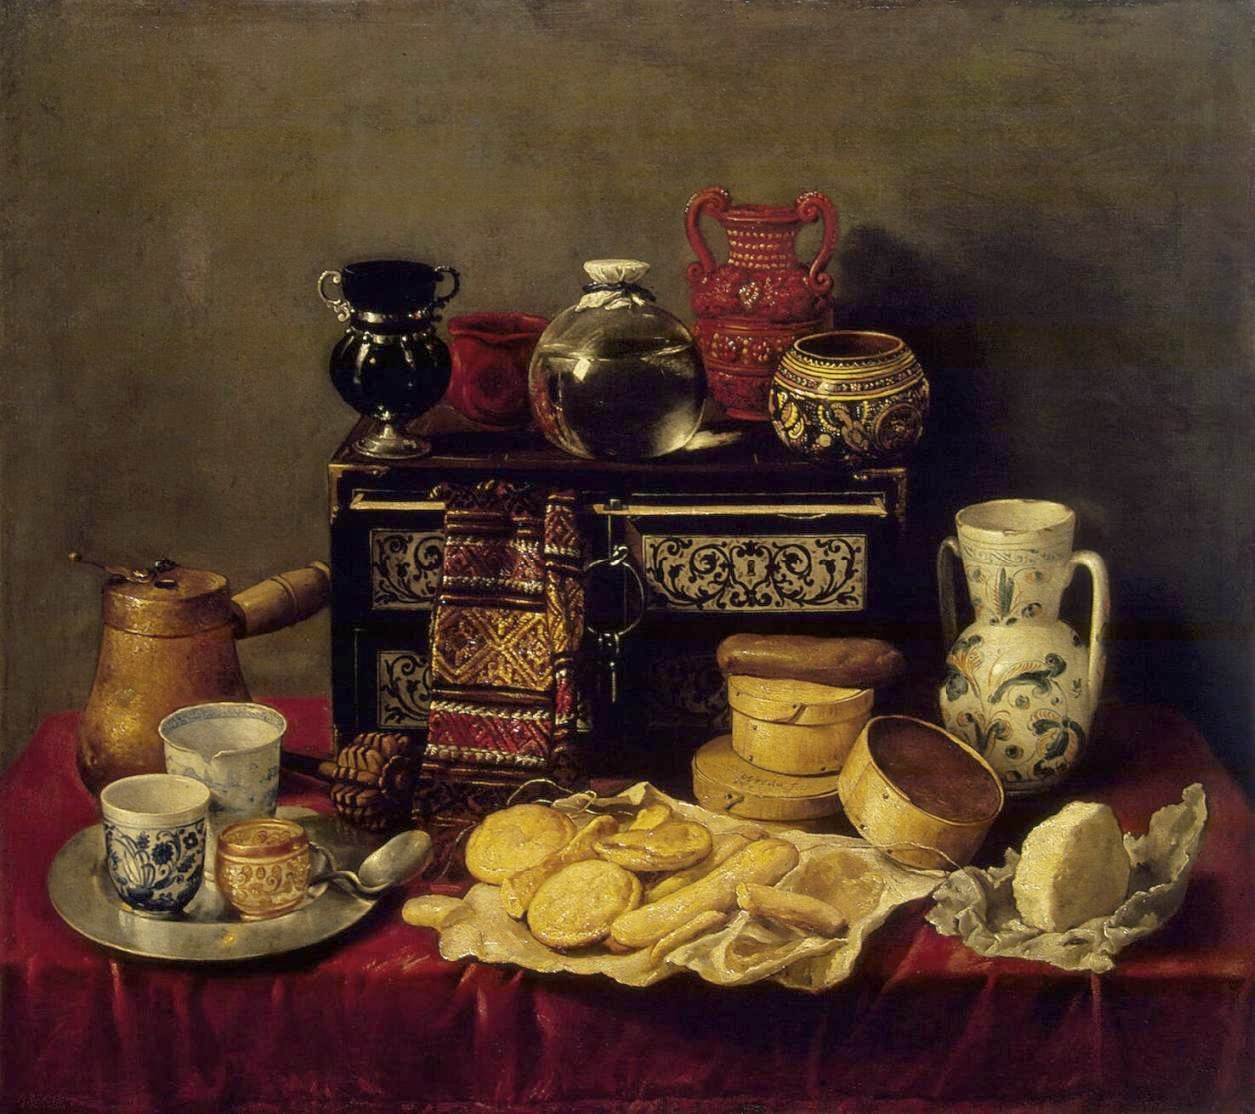 Still life with Ebony Chest by Pereda 1652